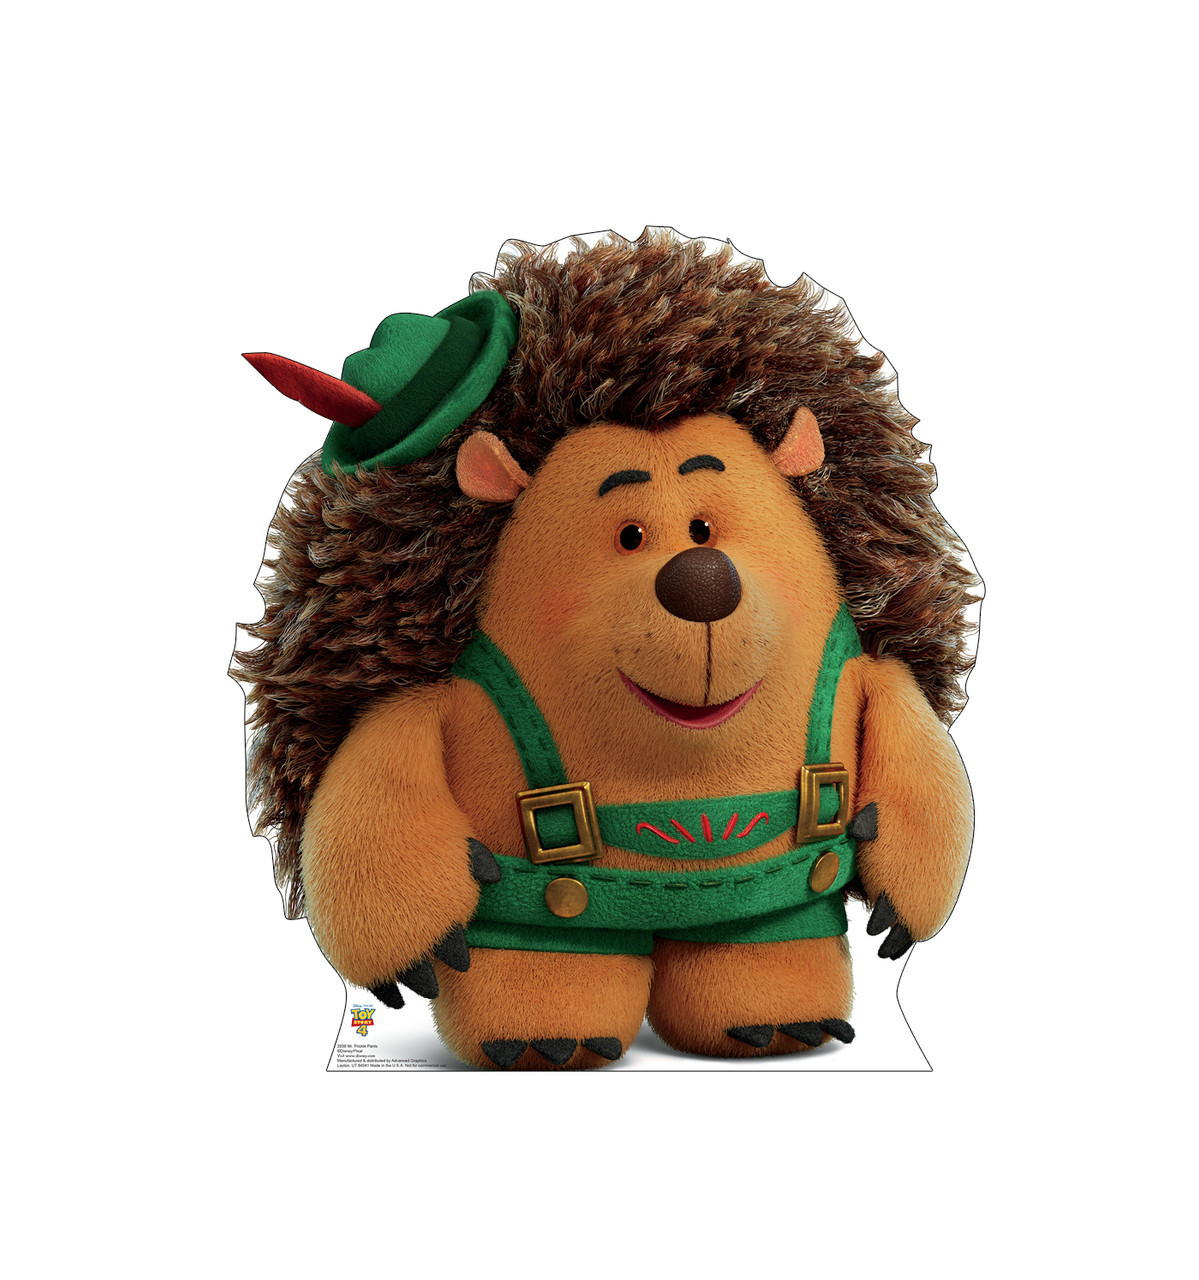 Mr Prickle Pants - Toy Story 4 Cardboard Cutout Front View